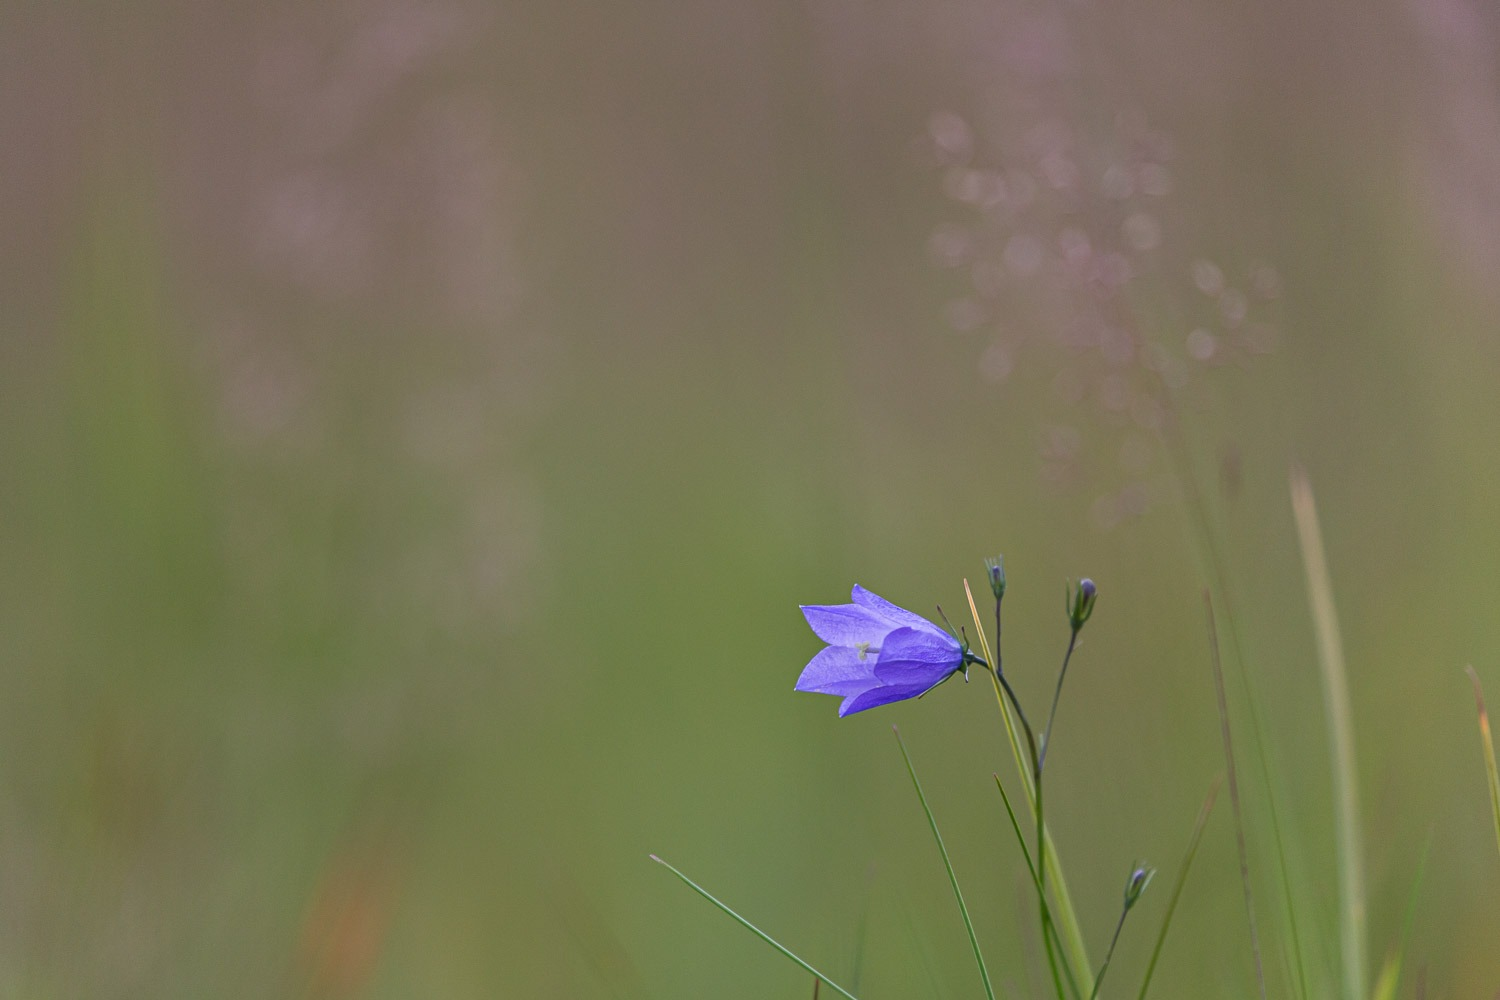 harebell in bottom third of photograph